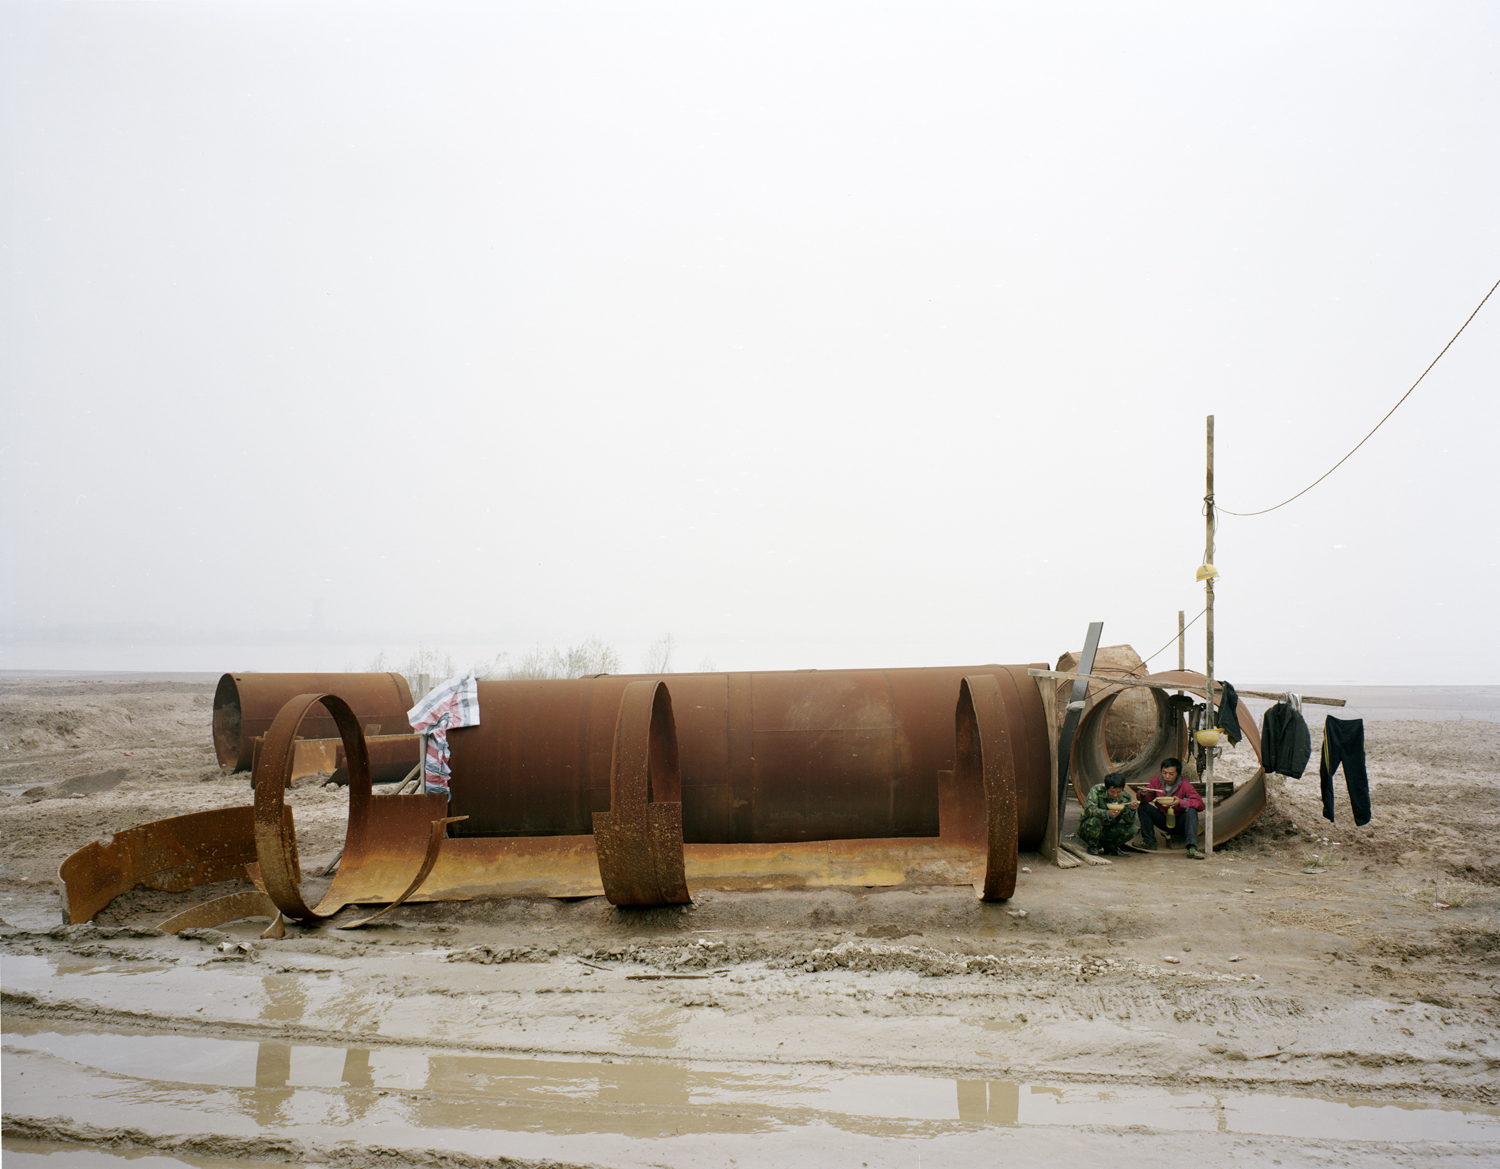 People living in an iron pipe, Shaanxi province.